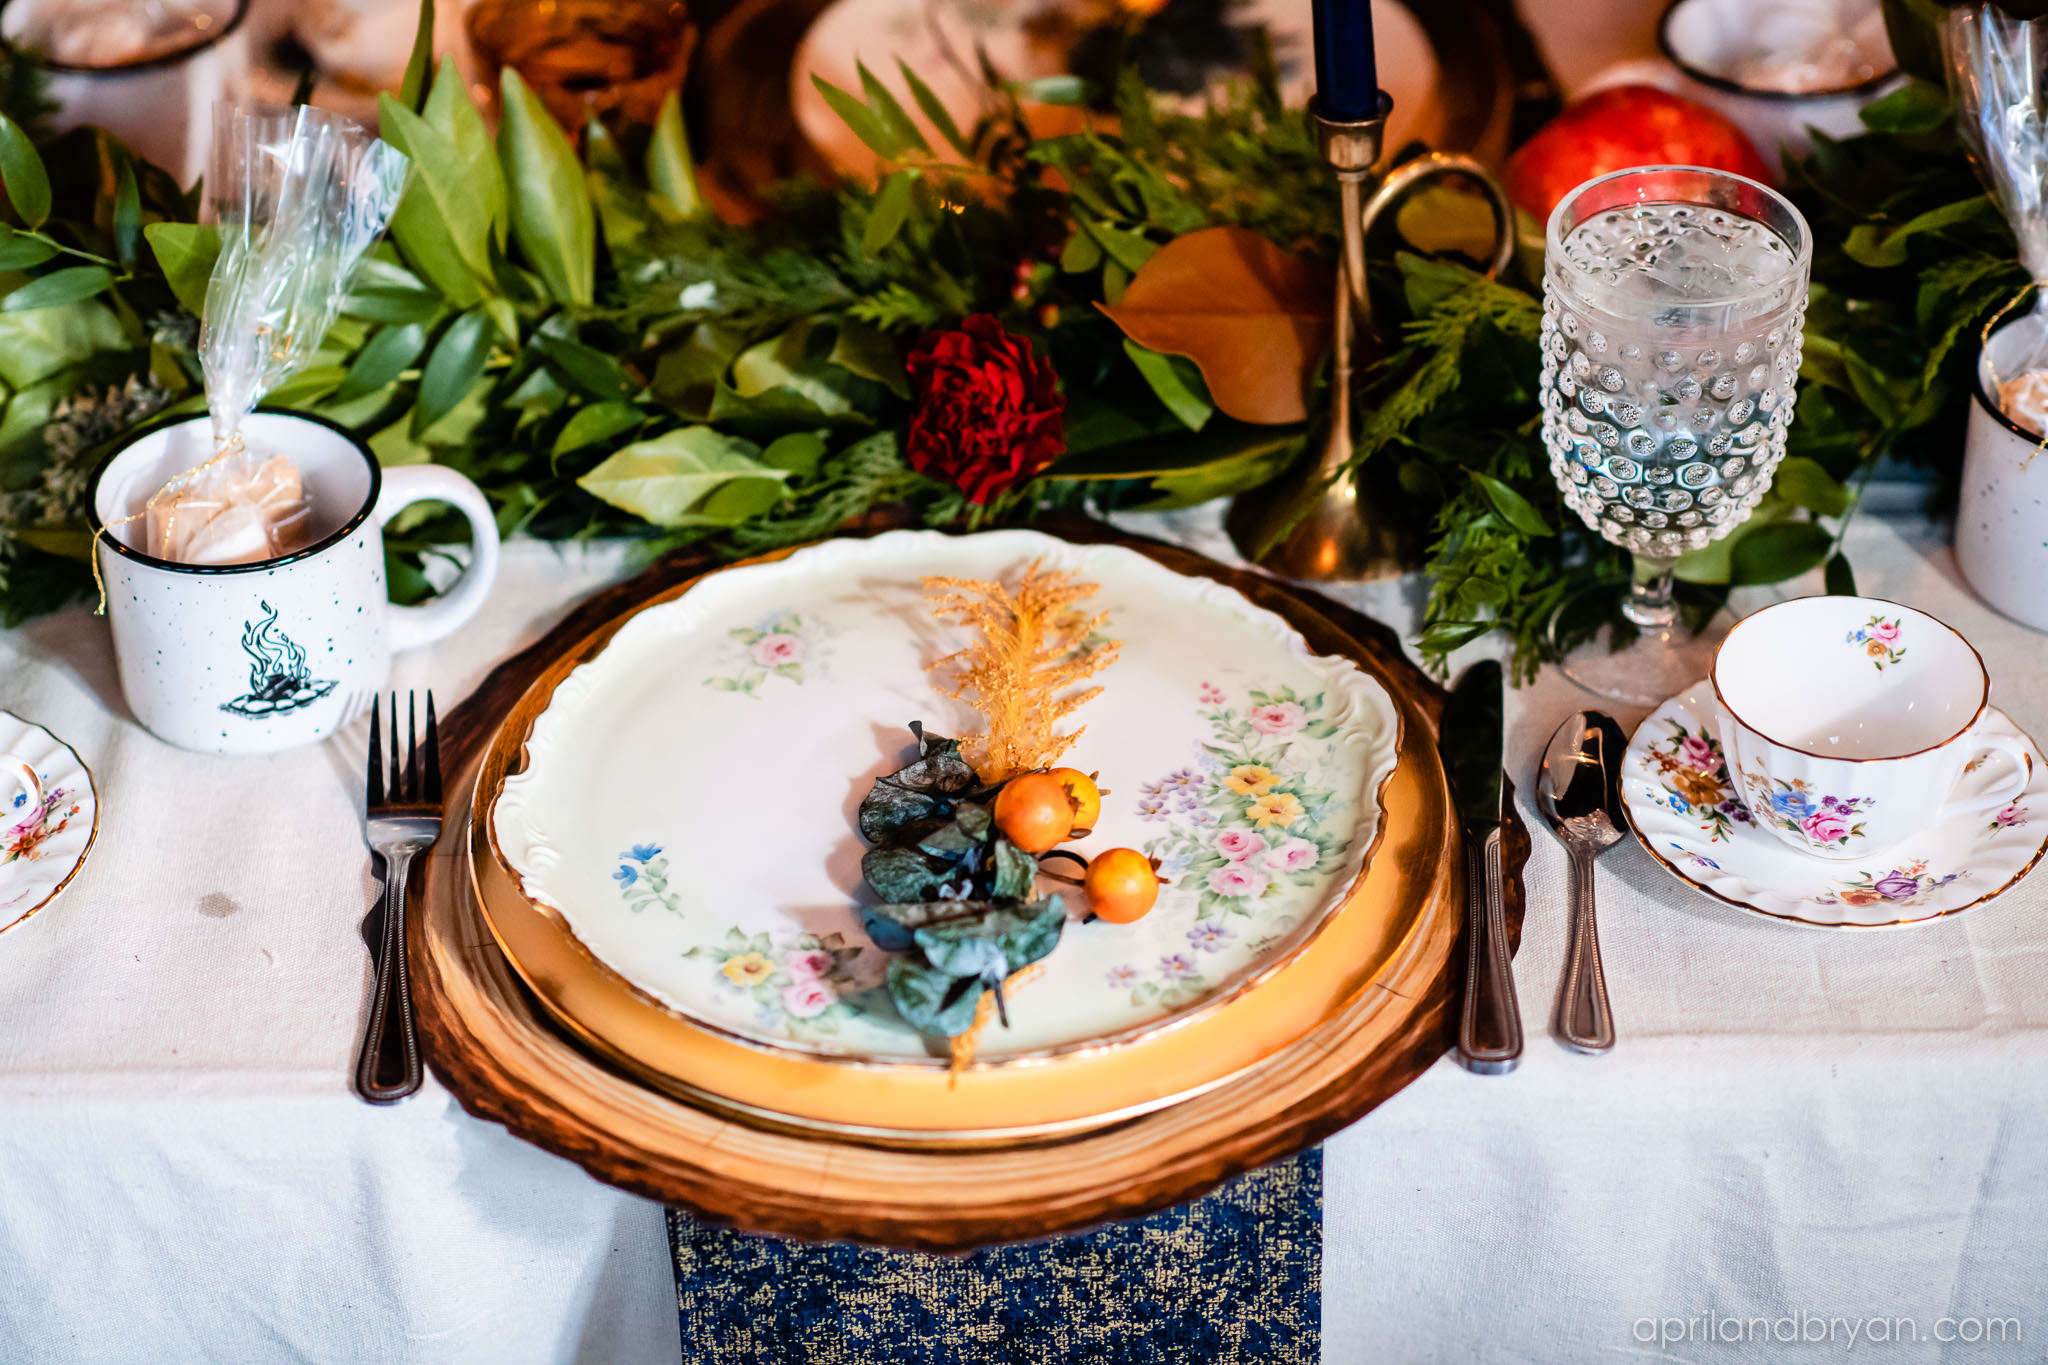 Gooseberries were accompanied by greens as a garnish for the plate at each guests's seat. Nicholas and Rebecca Fasnacht tie the not at Tellus360 on November 1, 2019. Captured by April & Bryan Photography and featured on Dream Weddings.